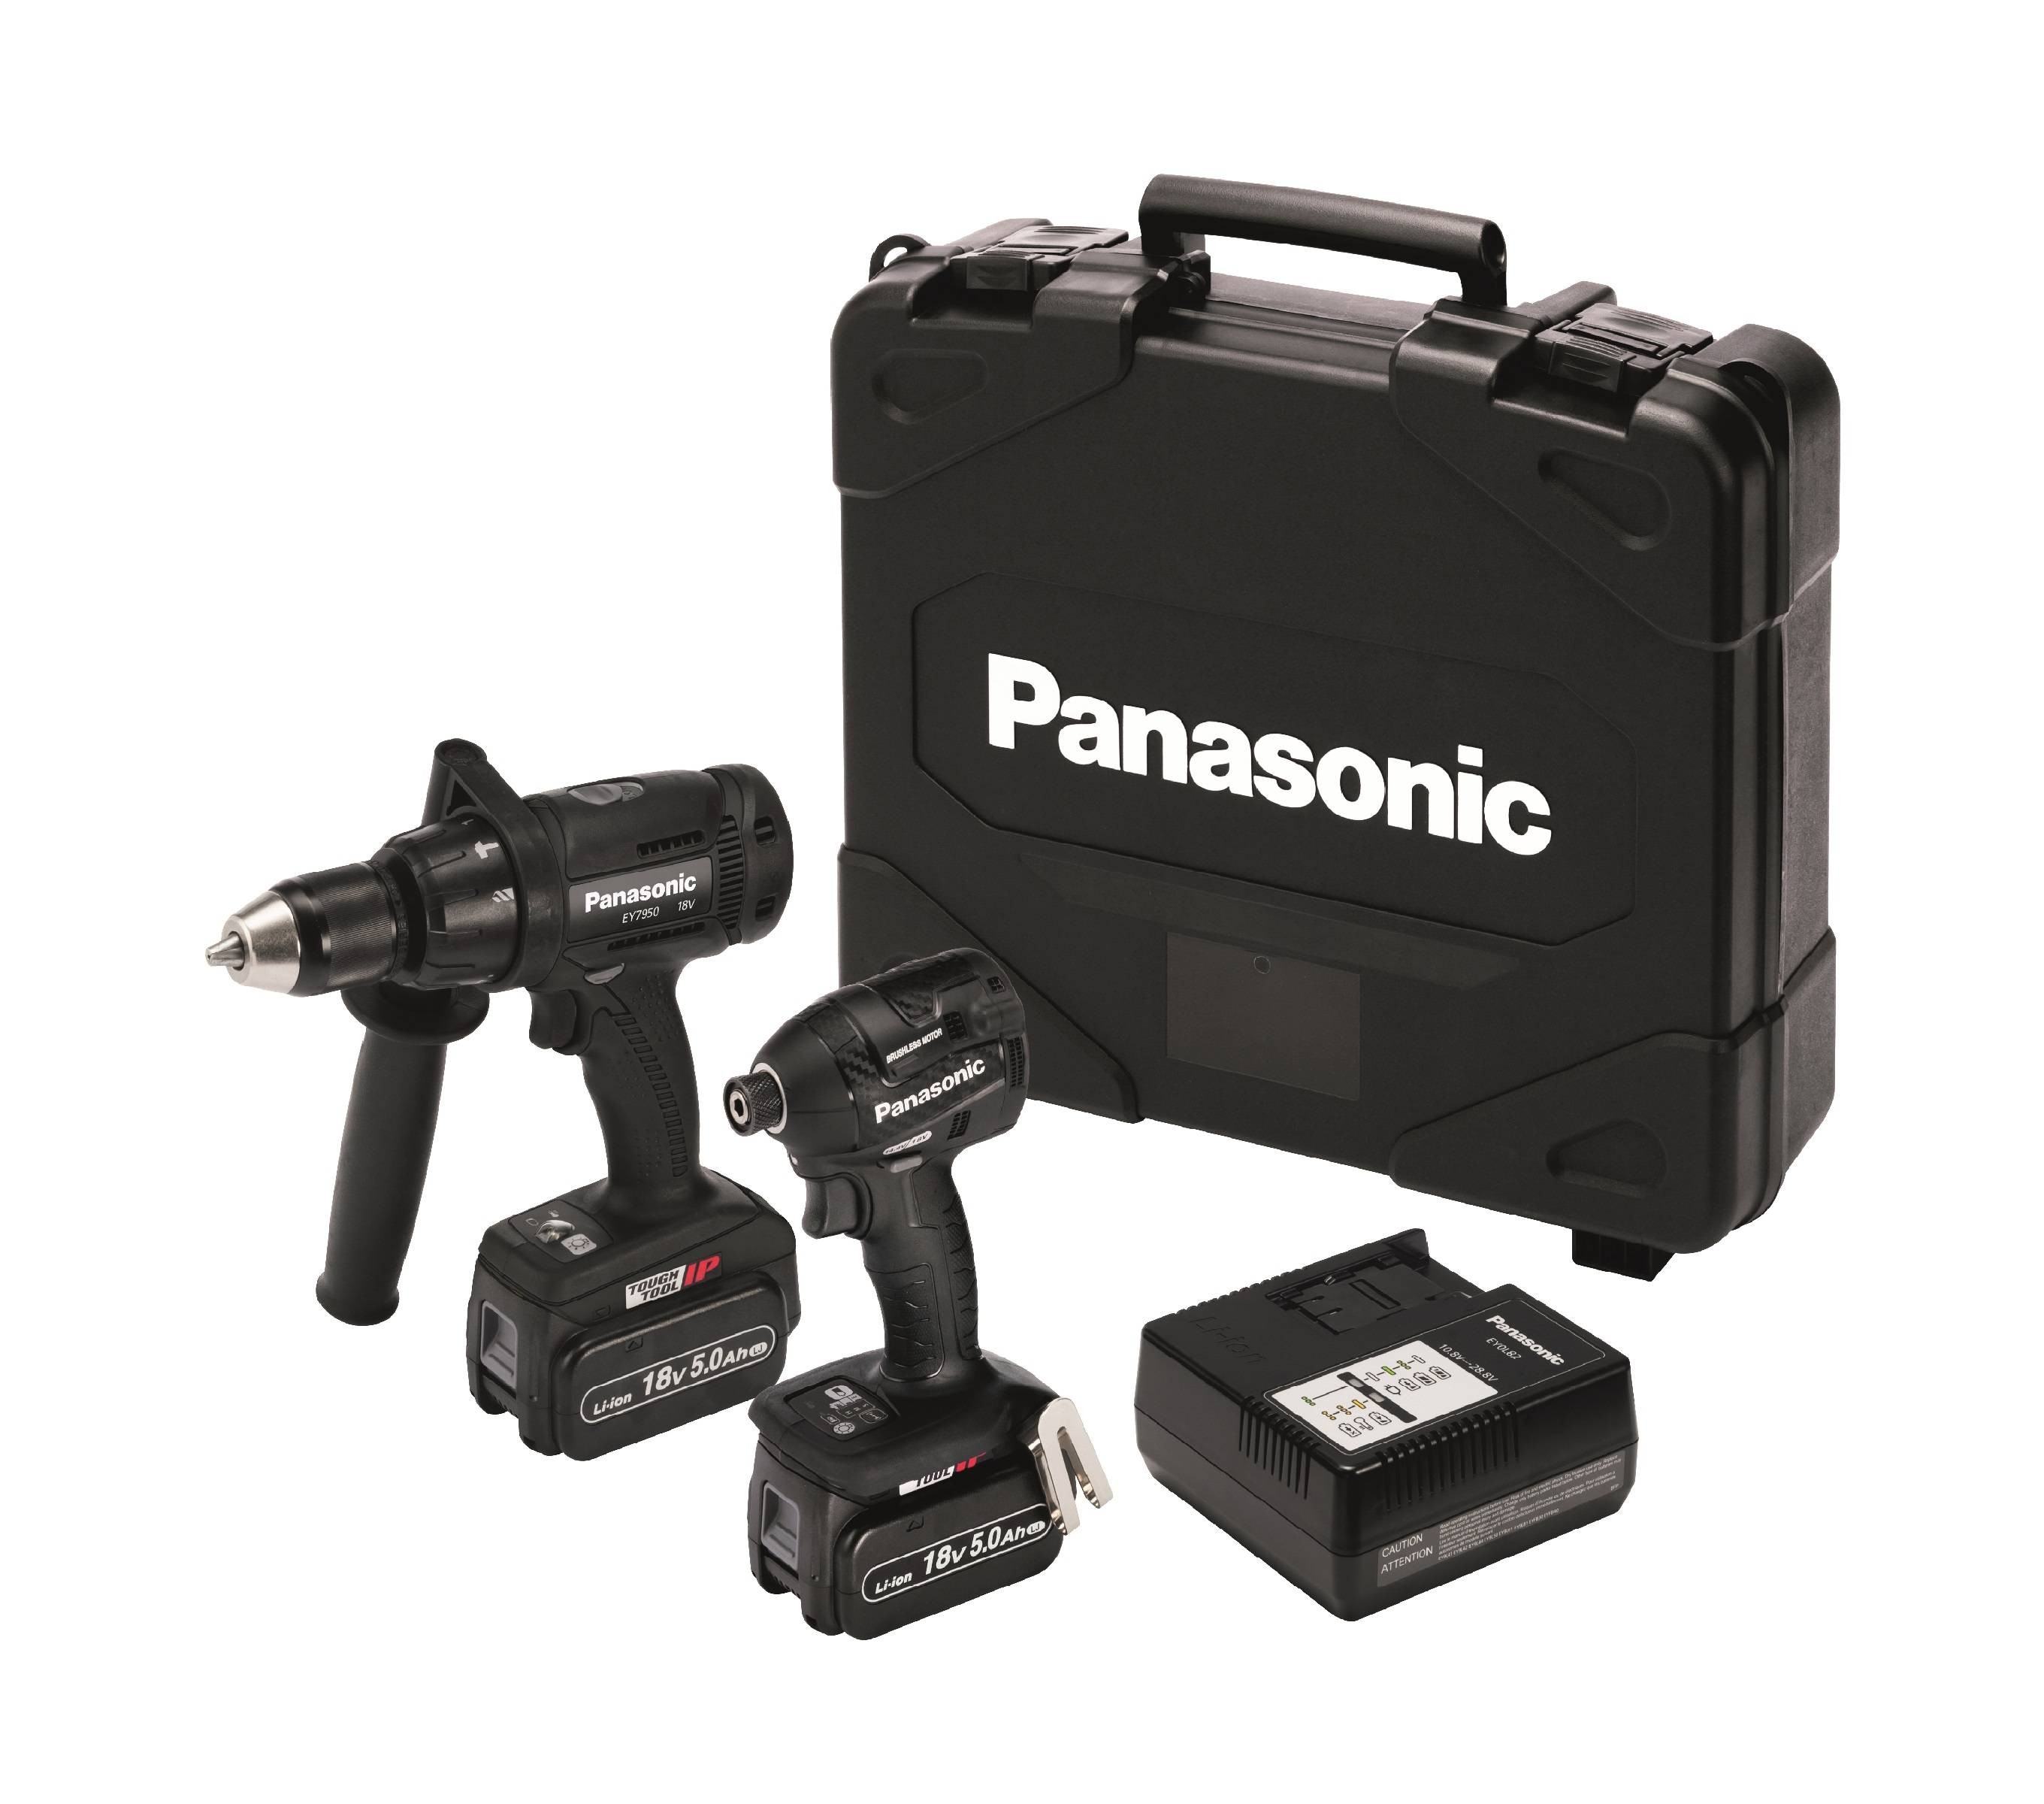 Panasonic EYC218LJ2G Twin Kit inc Combi Drill & Impact Driver plus 2x 5.0Ah Batts